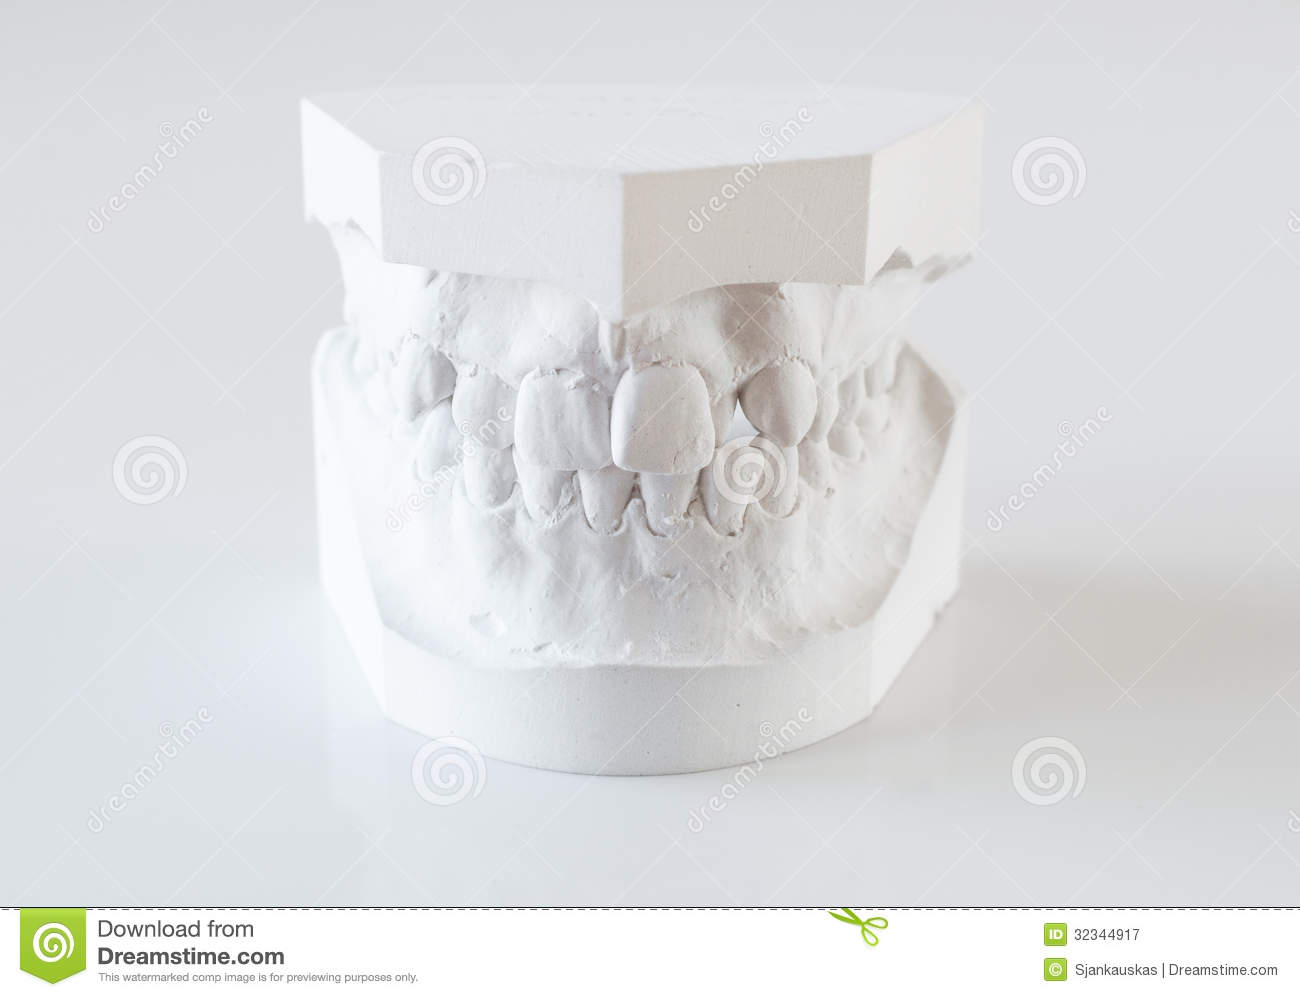 Orthodontic molds